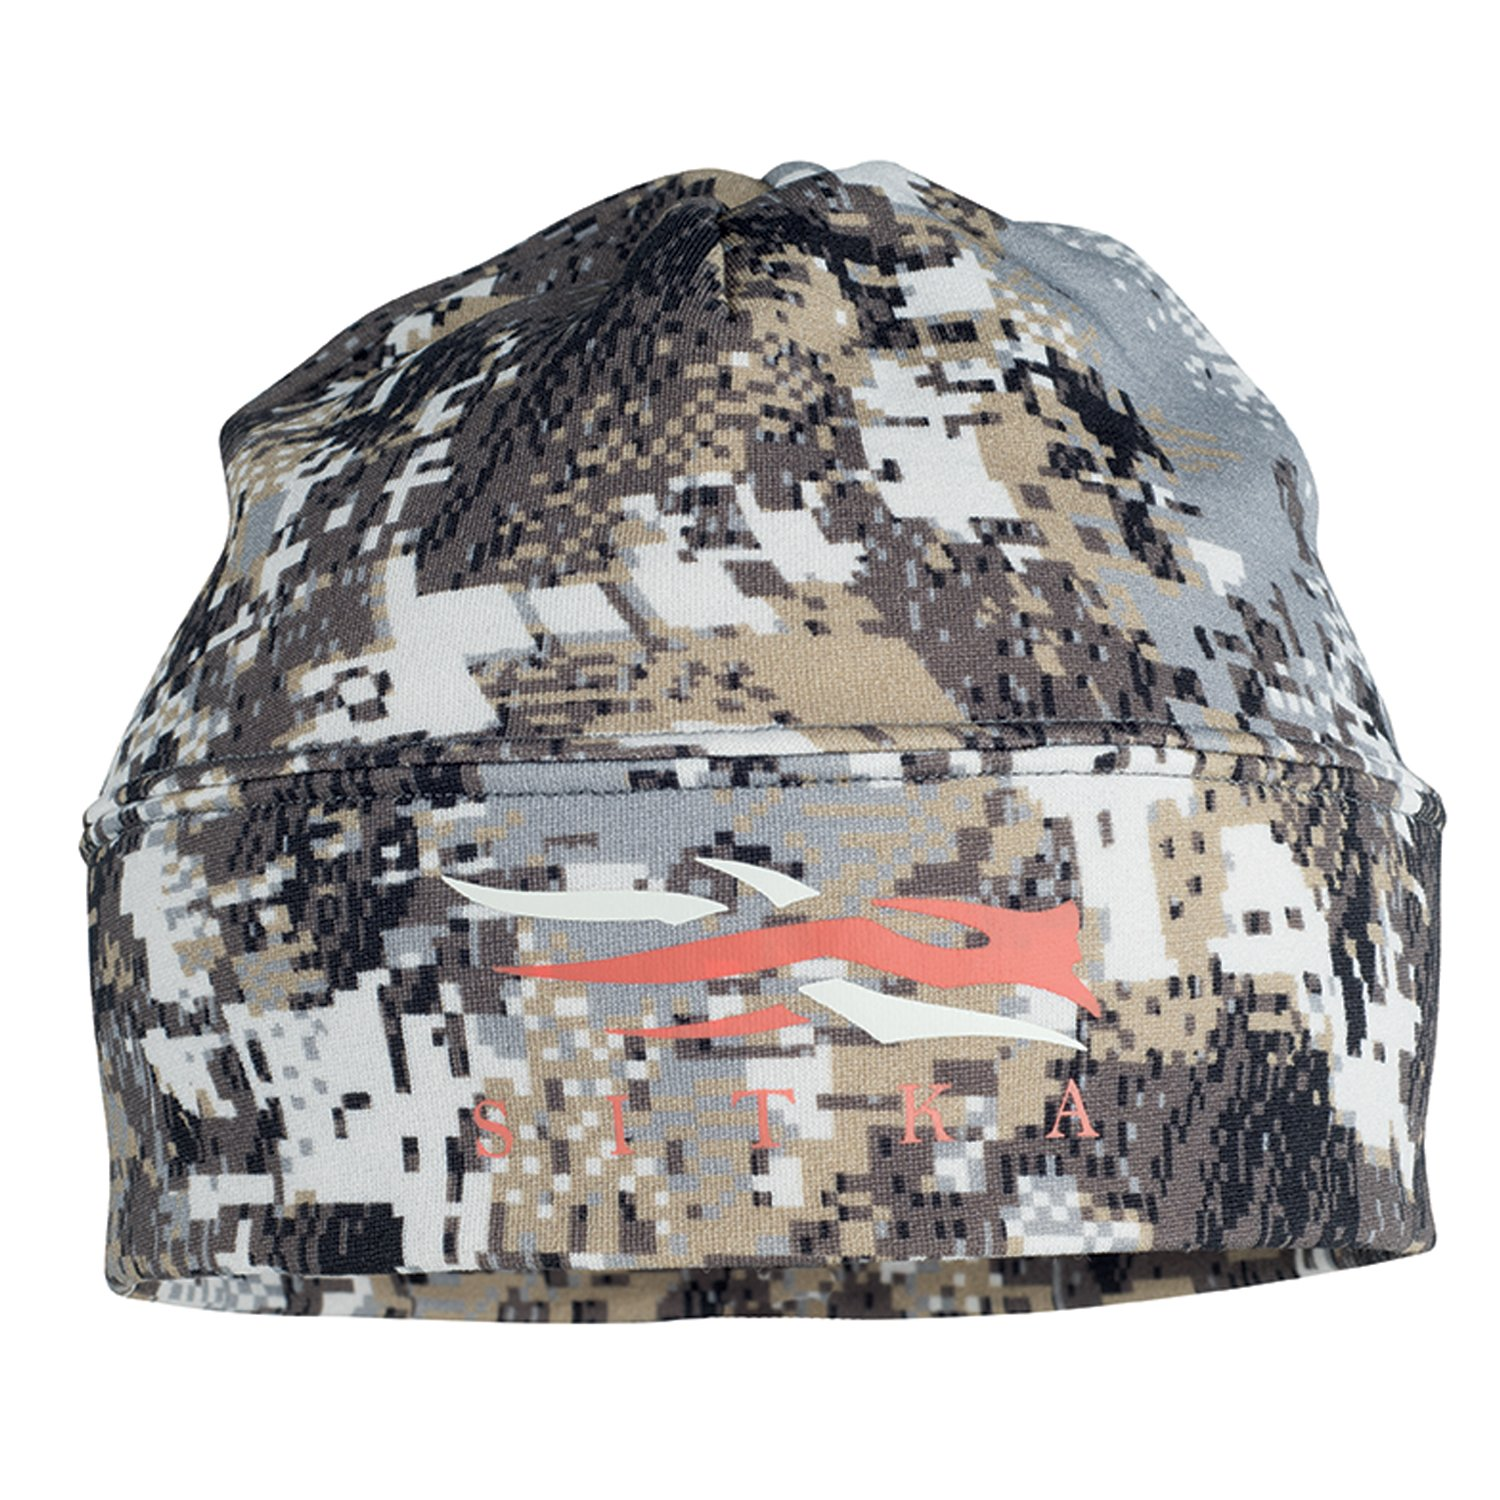 SITKA Gear Merino Beanie Optifade Elevated II One Size Fits All by SITKA